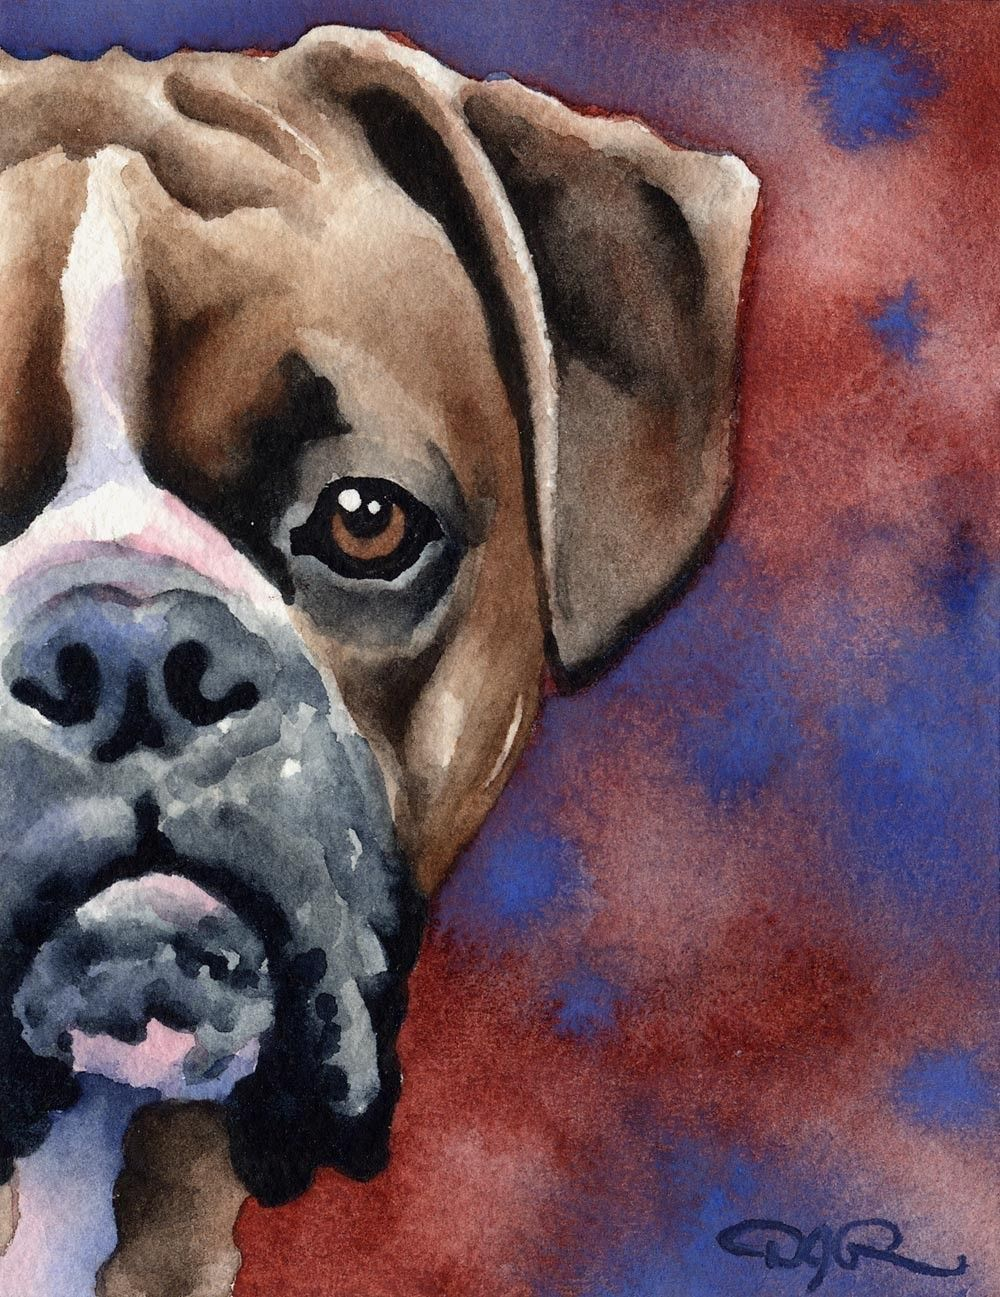 Peter Pan The Boxer Dogs Boxer Dogs Boxer